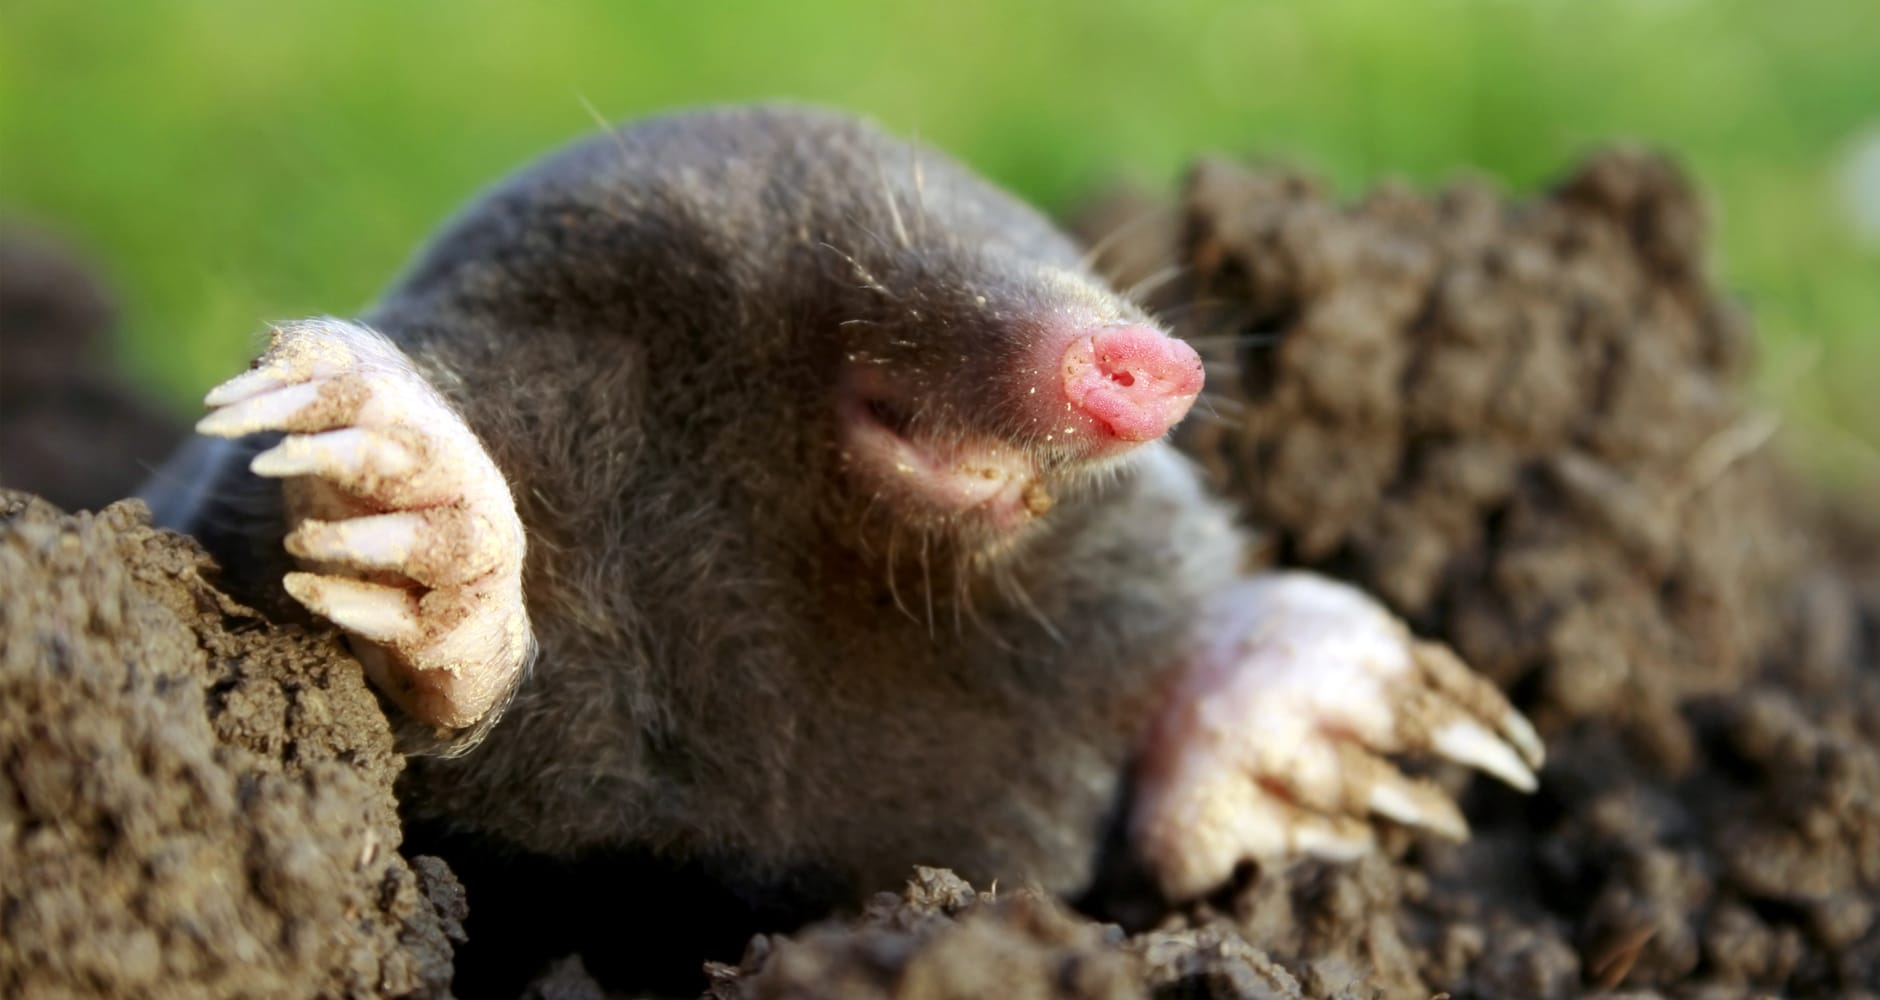 Pests of the Month: Moles and Volesimage preview